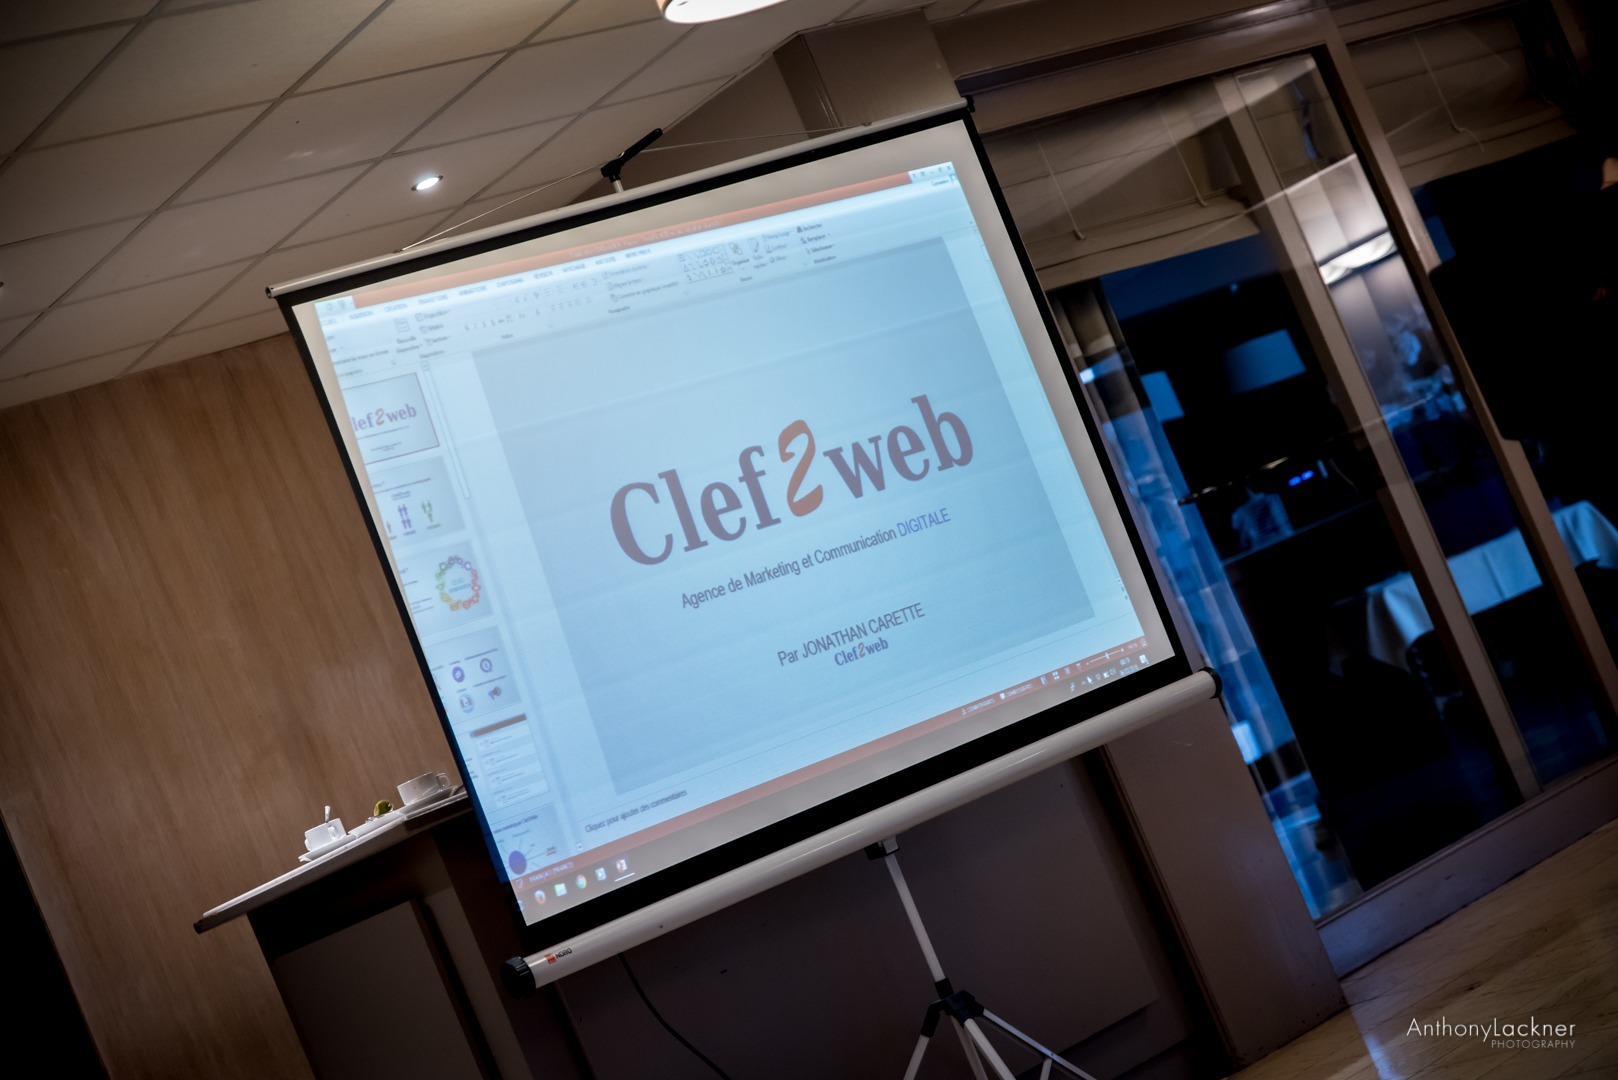 Clef2web, agence de communication digitale